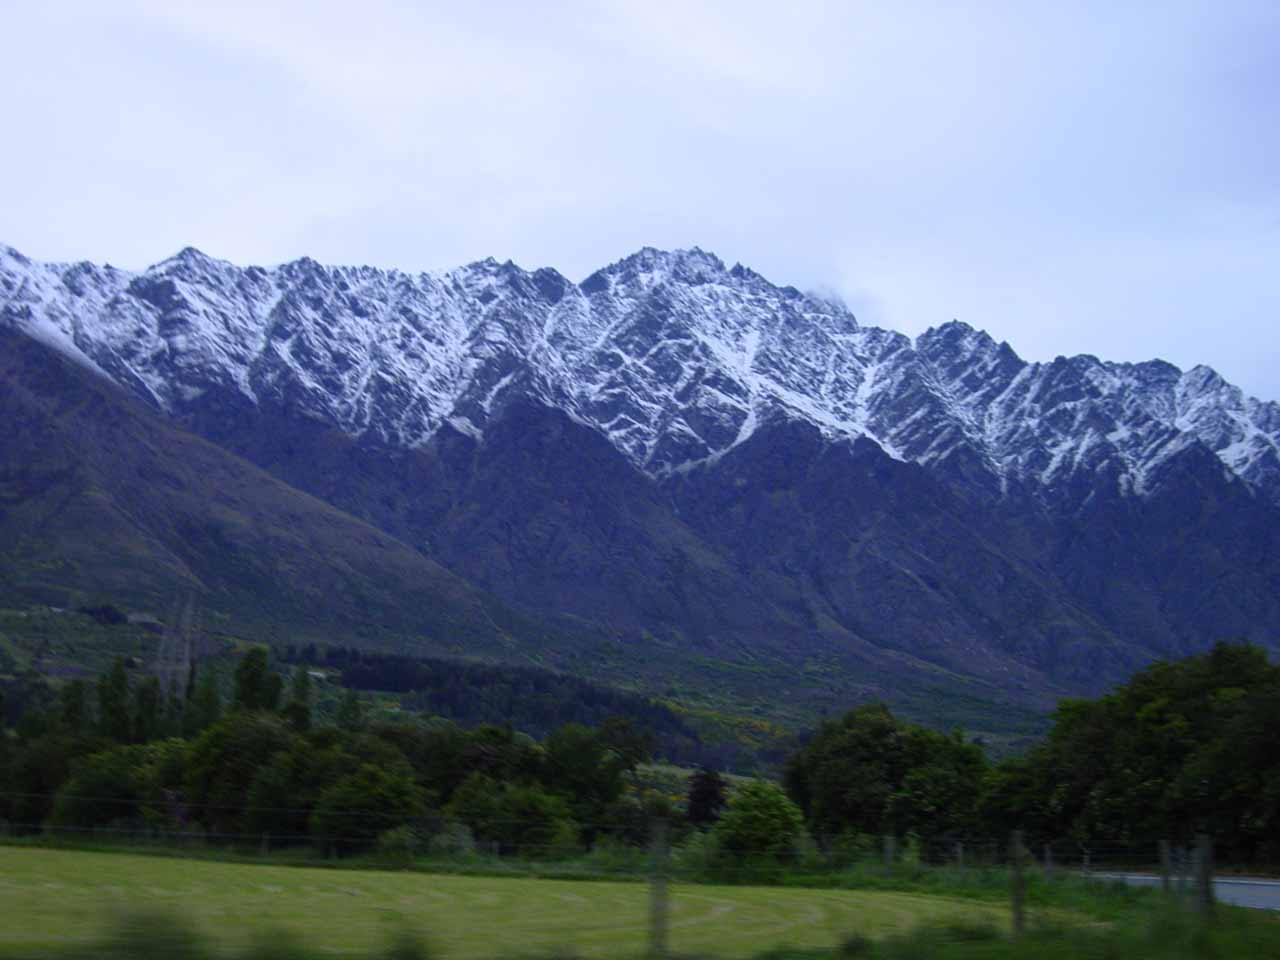 When driving around Queenstown, it's hard not to notice the mountain chain known as the Remarkables, which I'd imagine could be nice photo subjects backing Lake Wakatipu